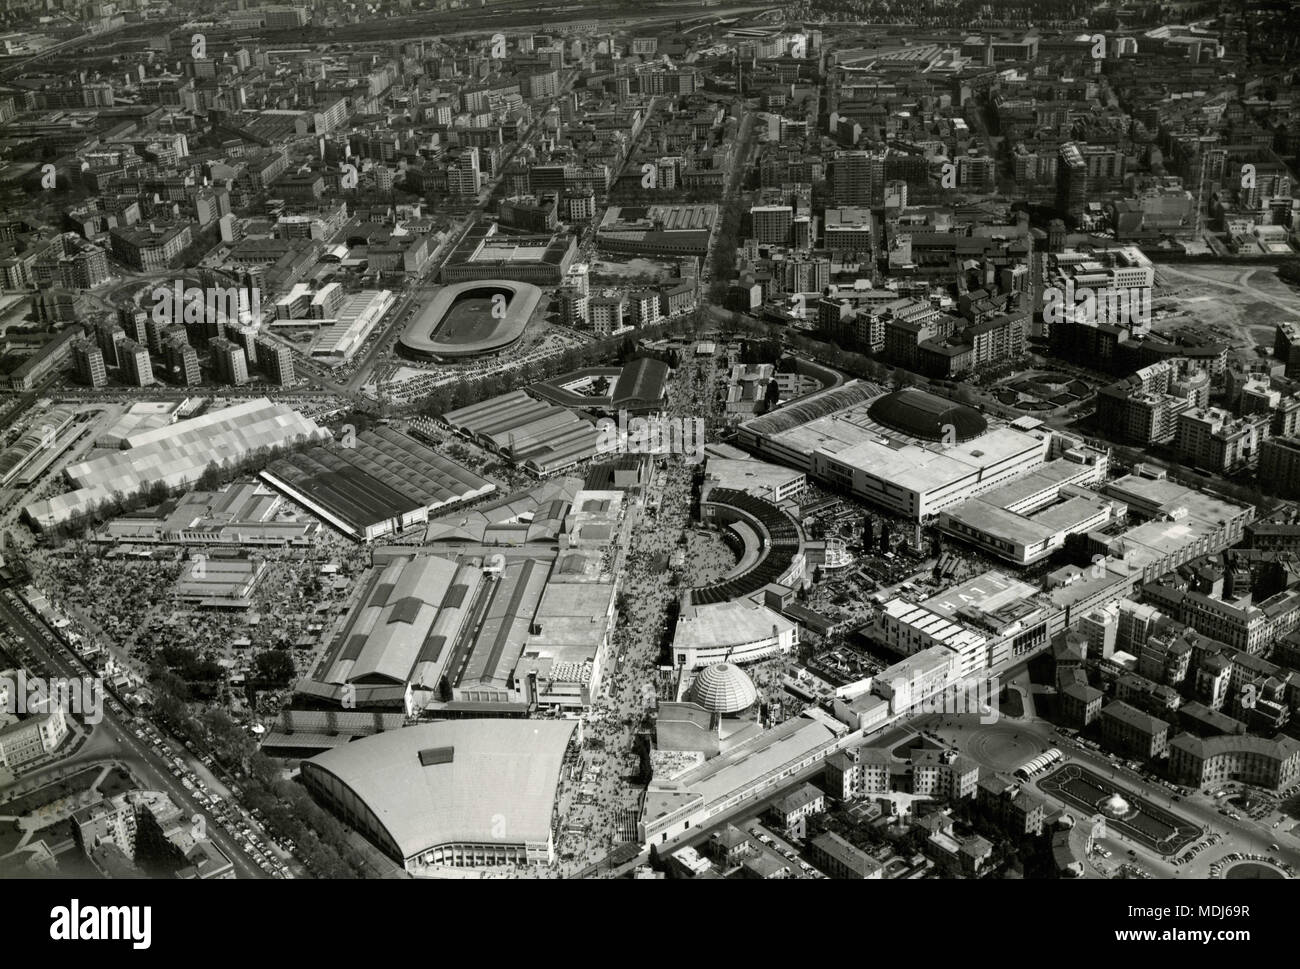 Aerial view of exposition area, Milan, Italy 1957 - Stock Image